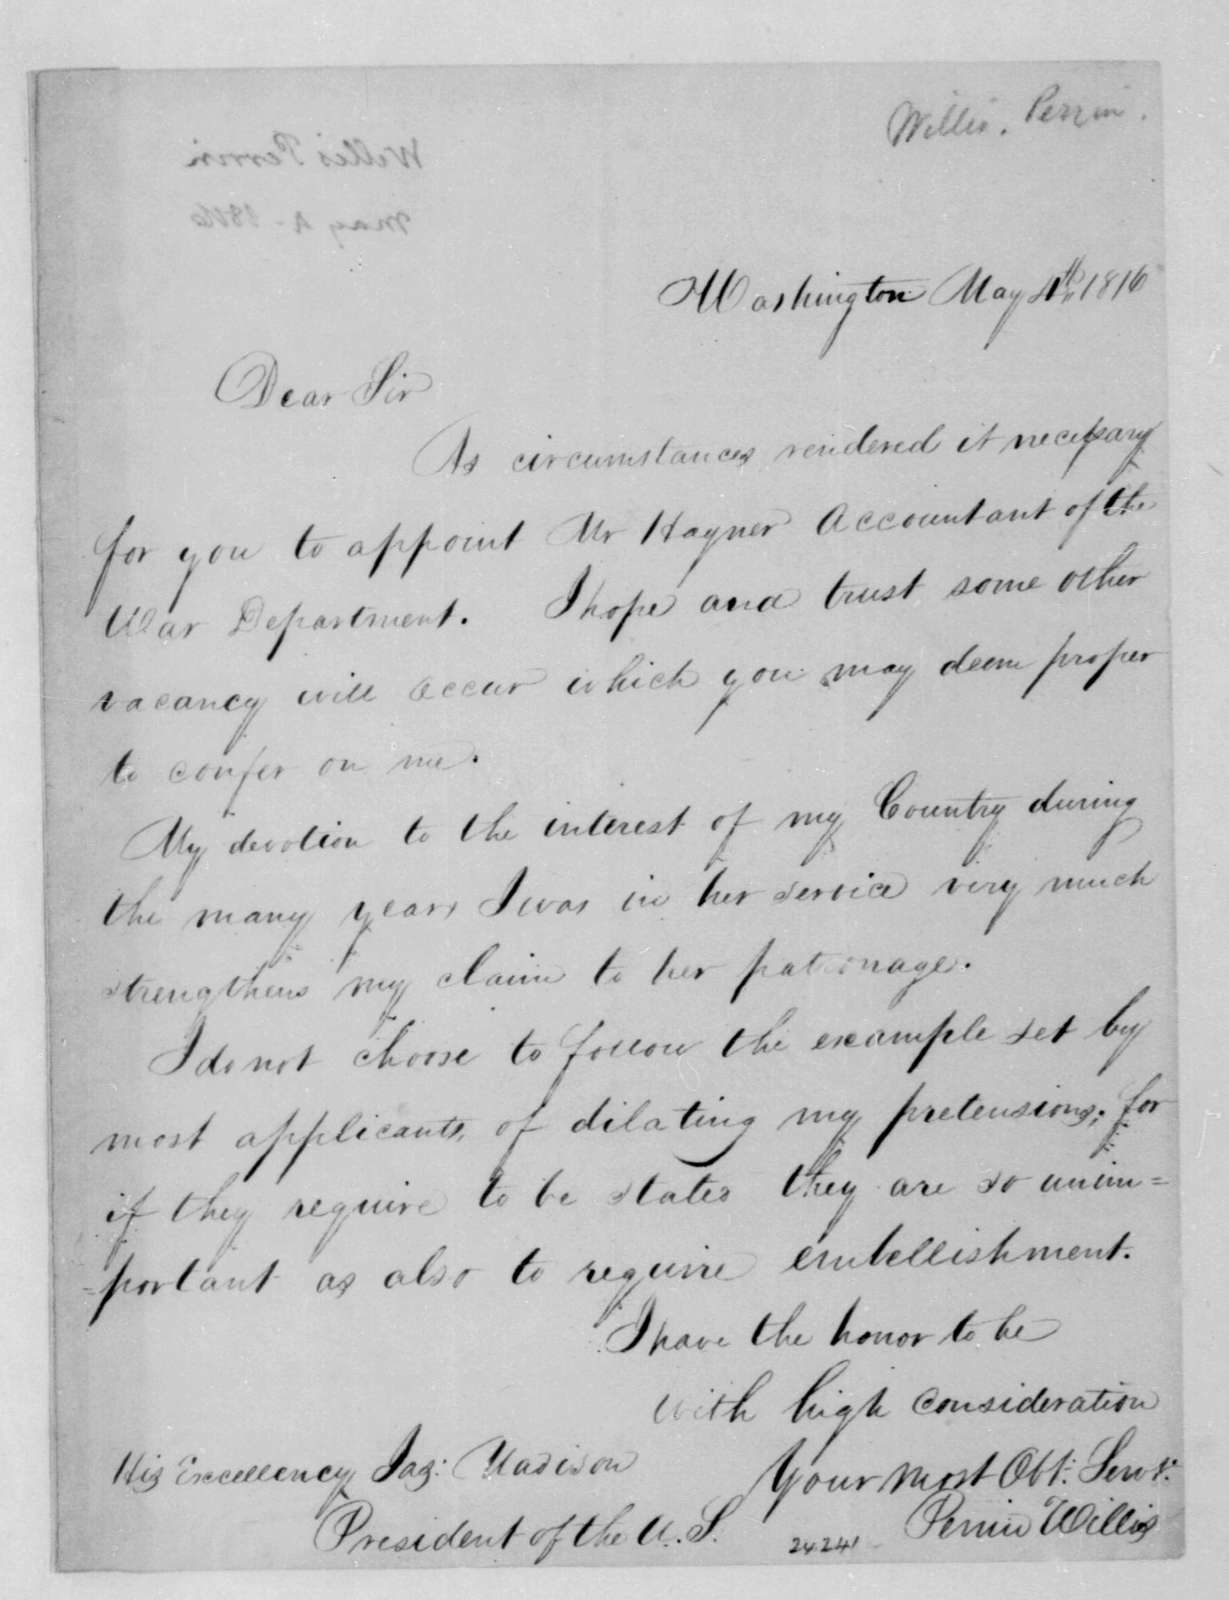 Perrin Willis to James Madison, May 4, 1816.